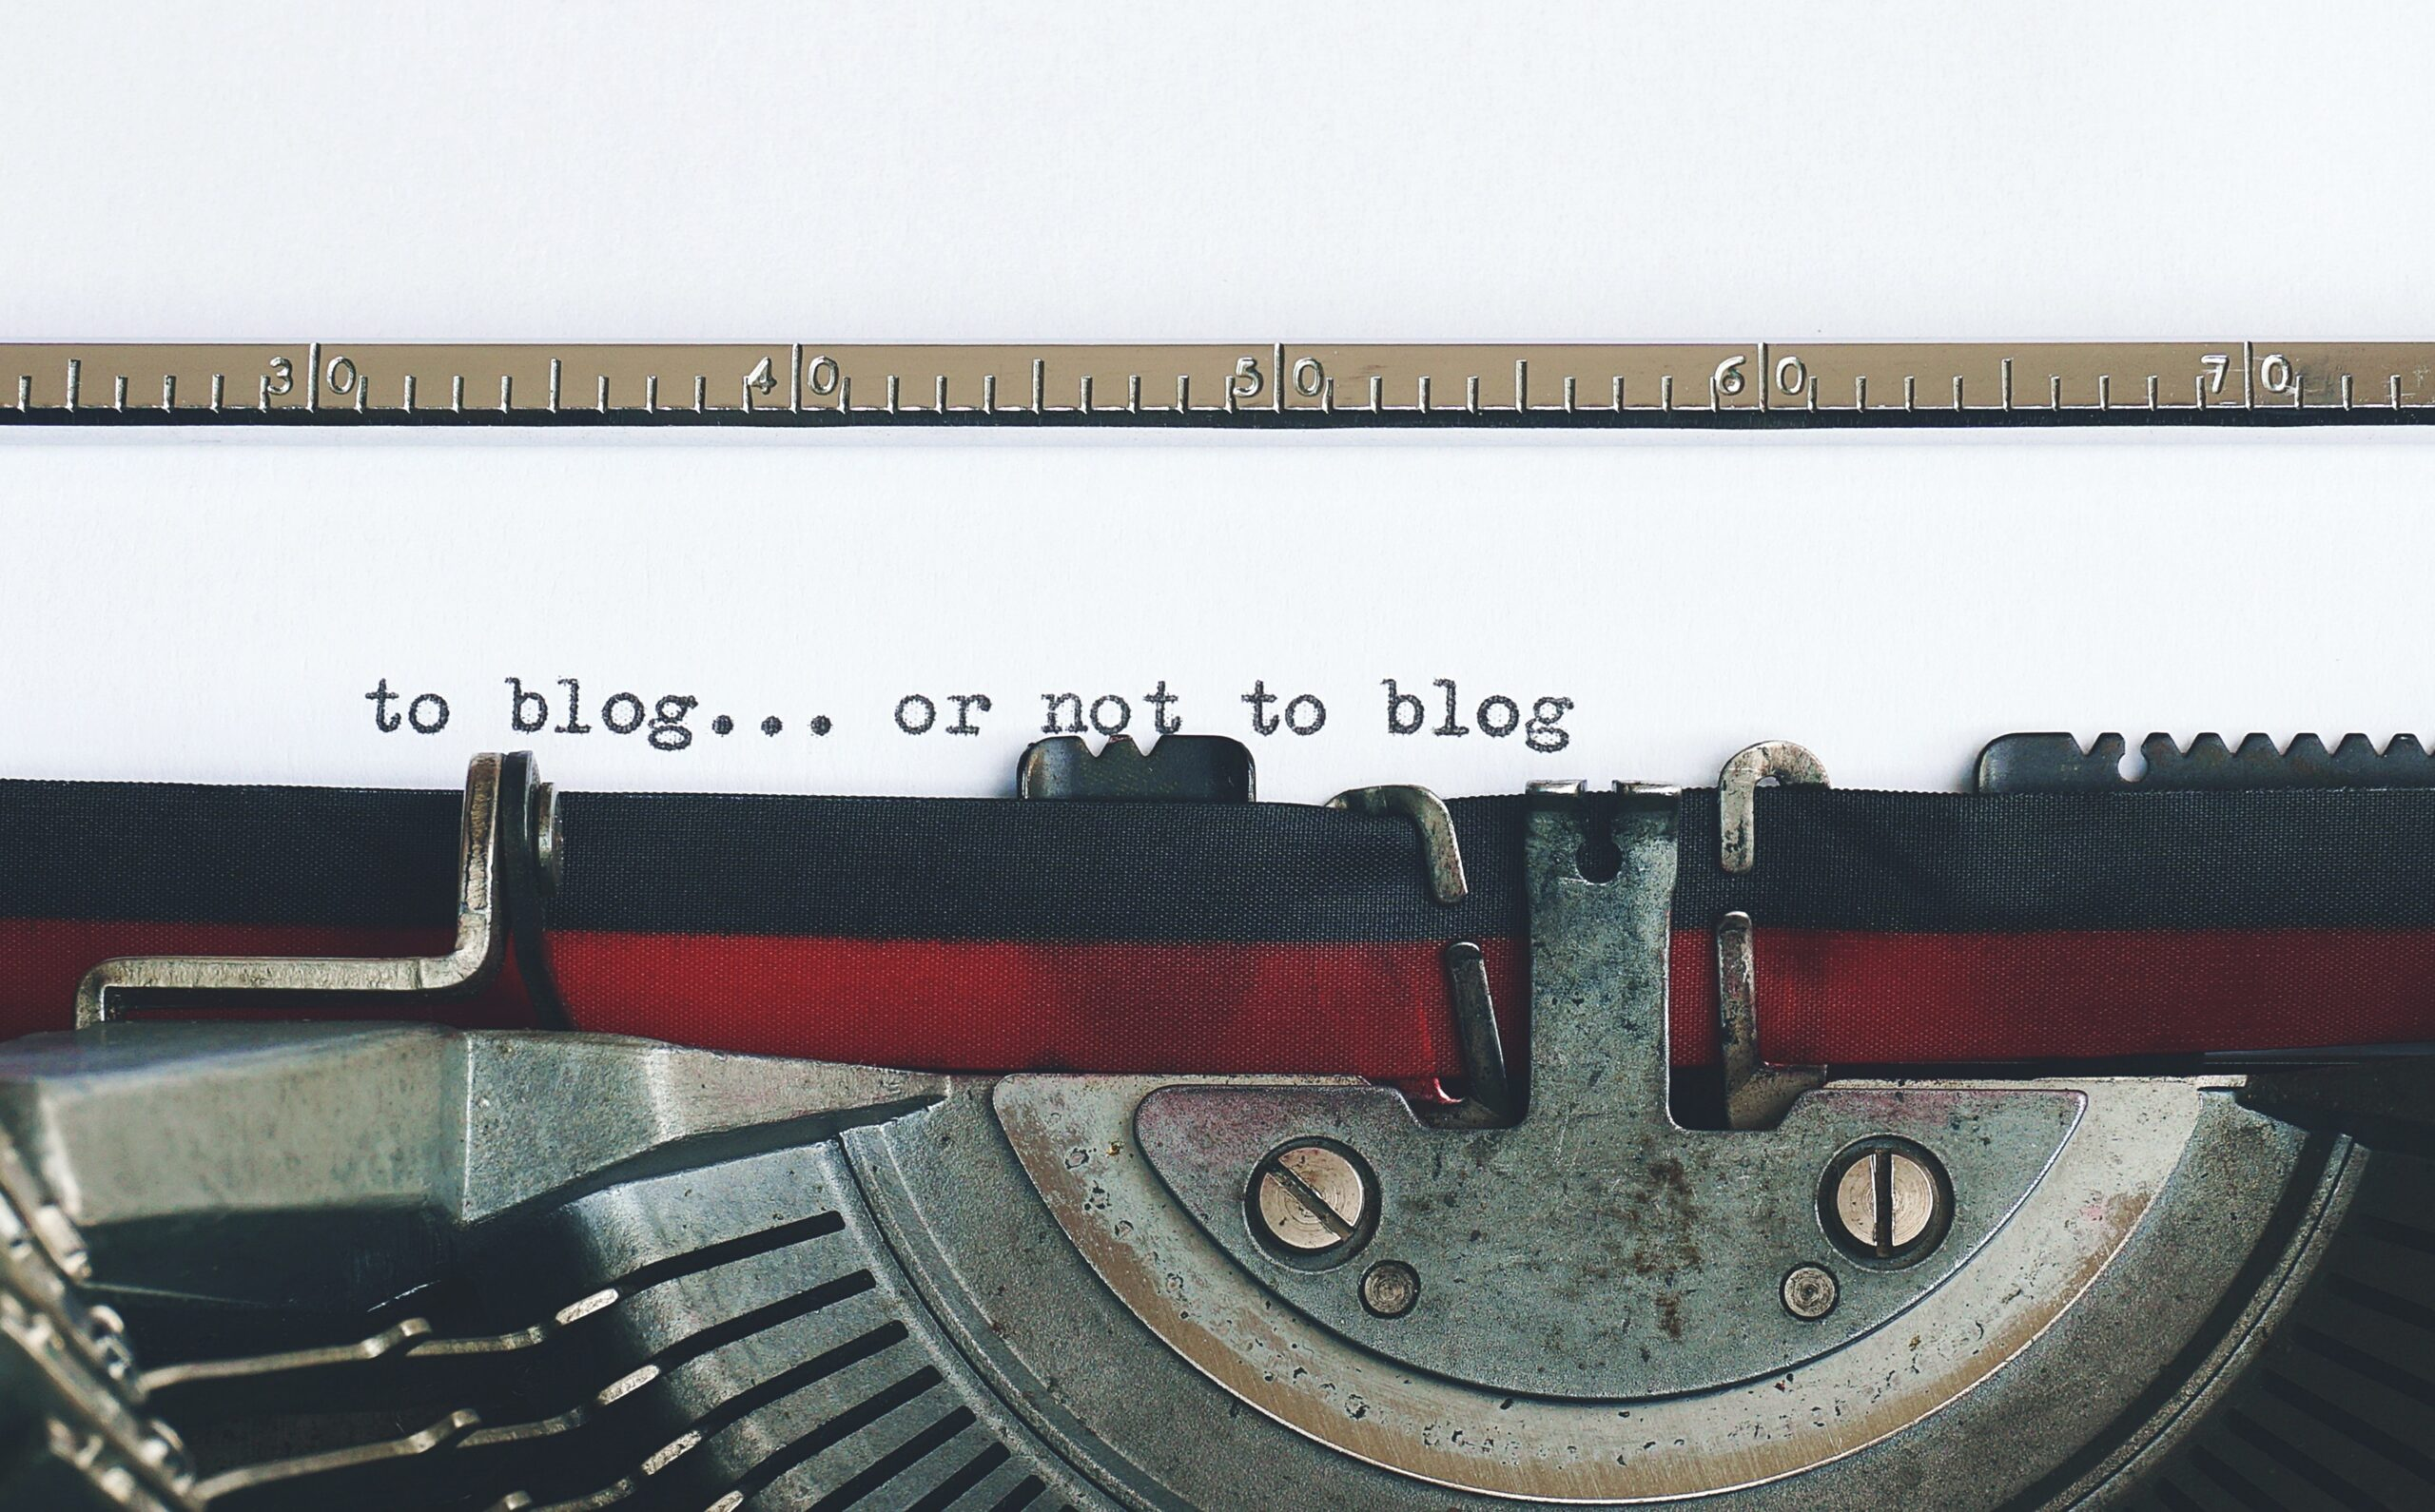 Typewriter - Rachel Writes blog 'Why should I have a blog on my company website?'